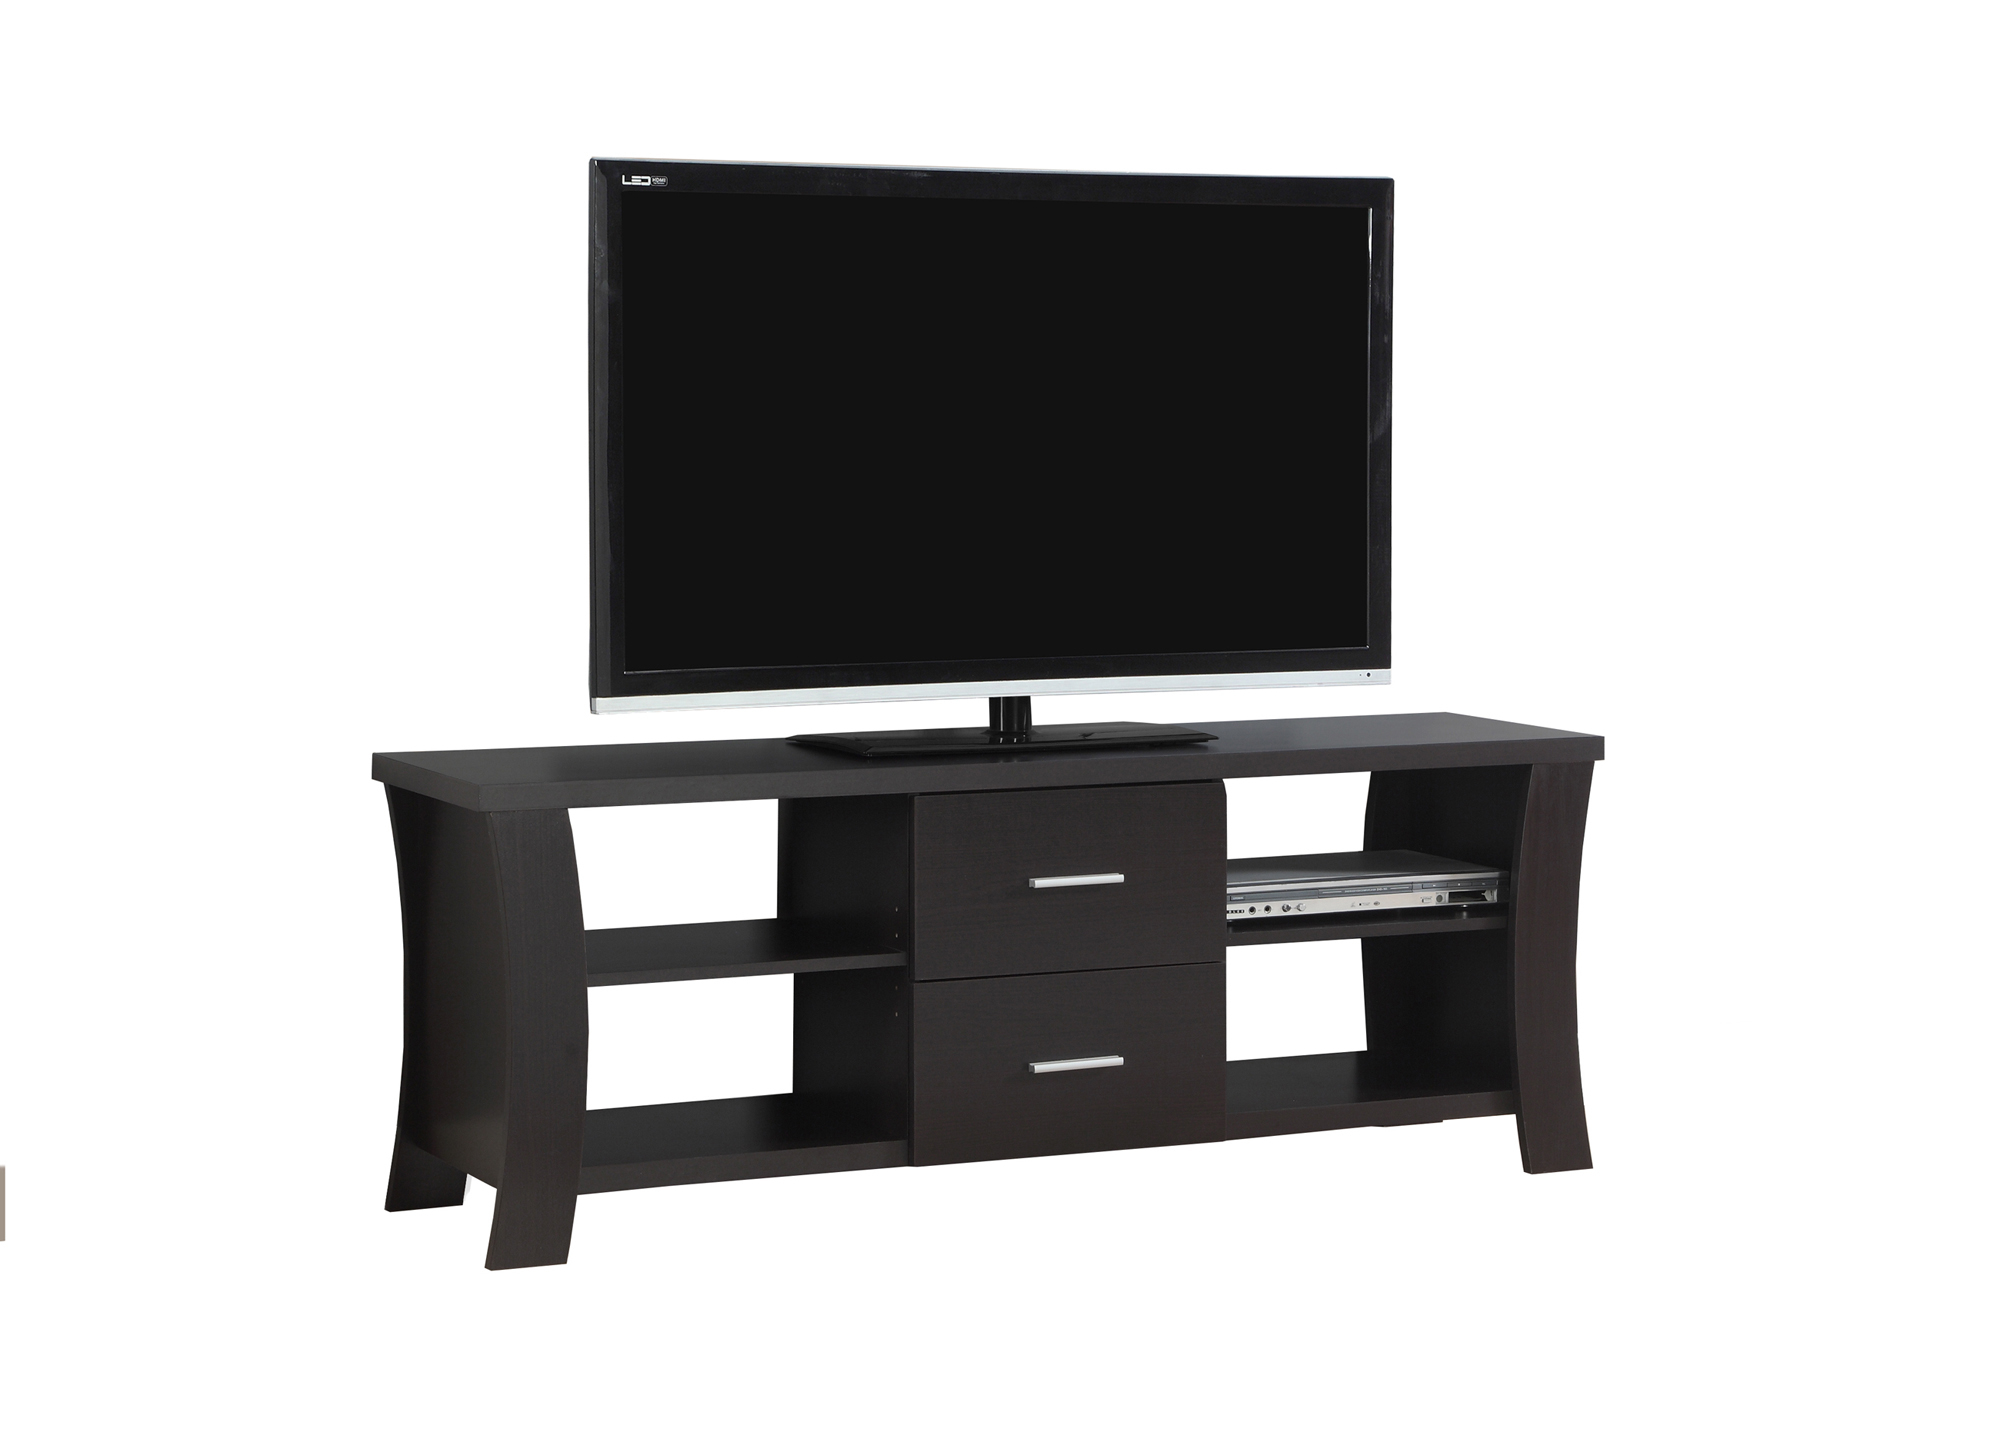 """TV Stand - 60\""""l, Cappuccino With 2 Drawers, 2683 5a5461f22a00e41a3d4fa5d6"""